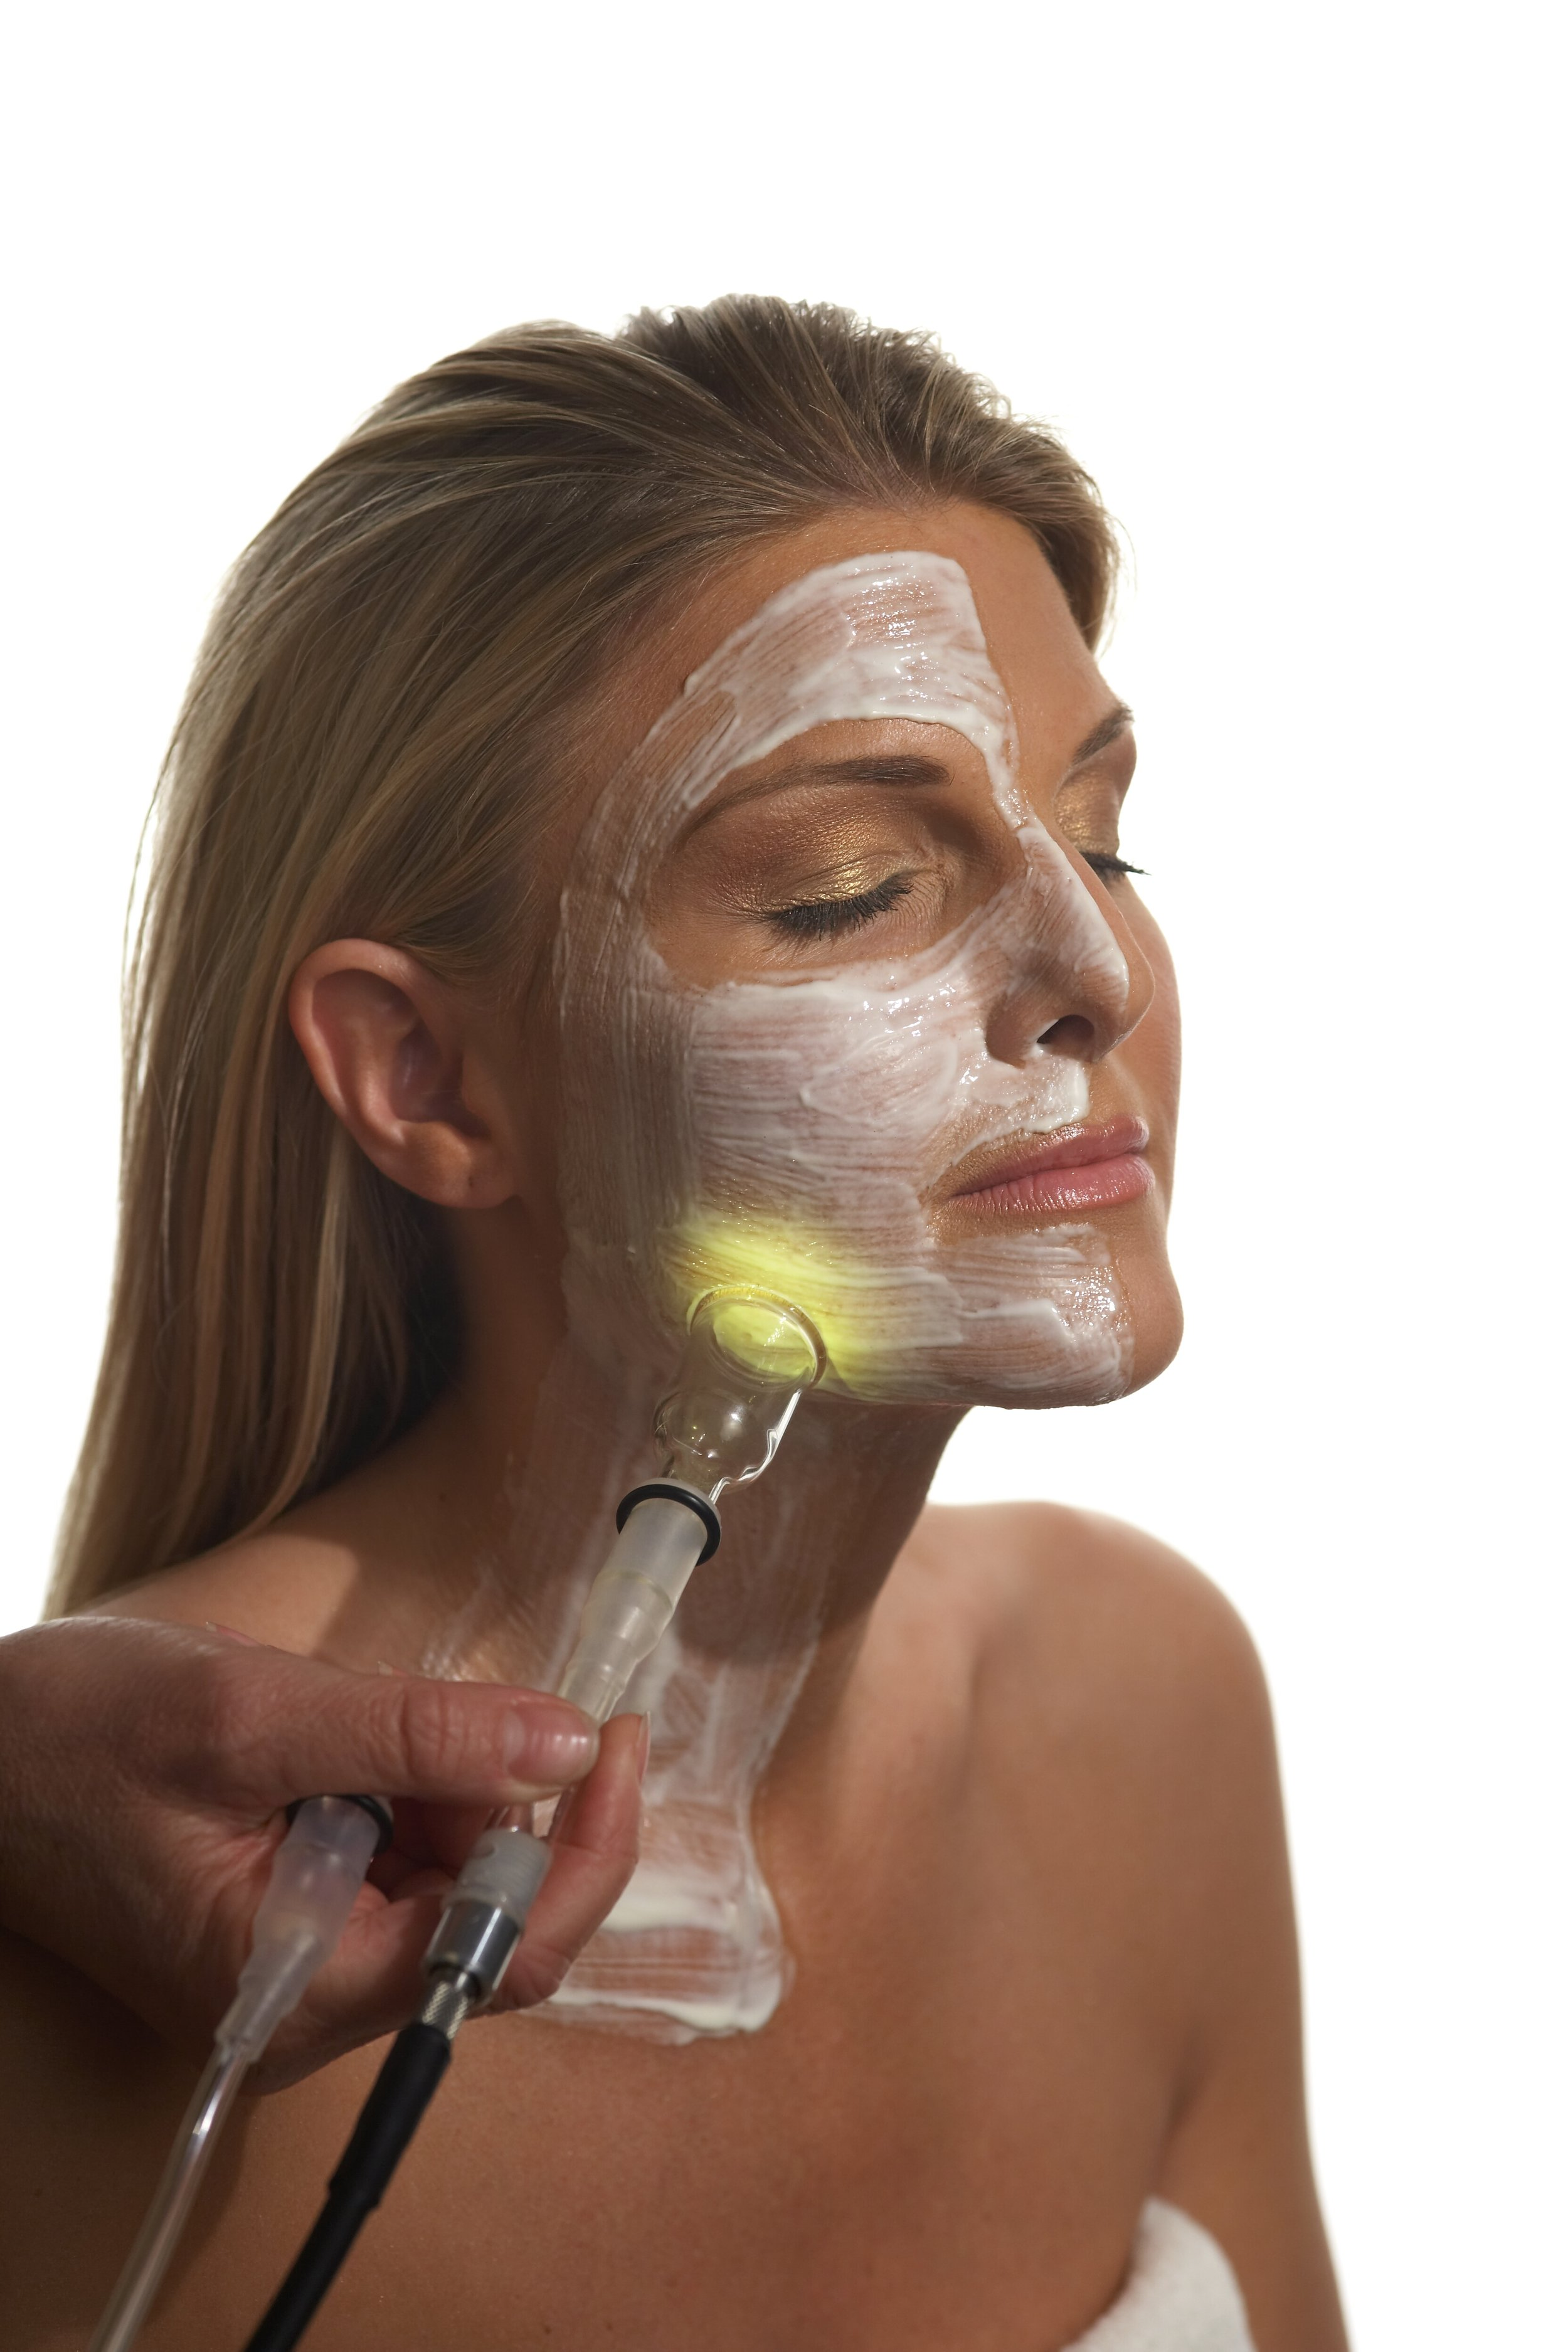 A woman receiving a PHYTO5 facial with quantum energetic skincare products and a lymphatic drainage enhanced with colored light therapy